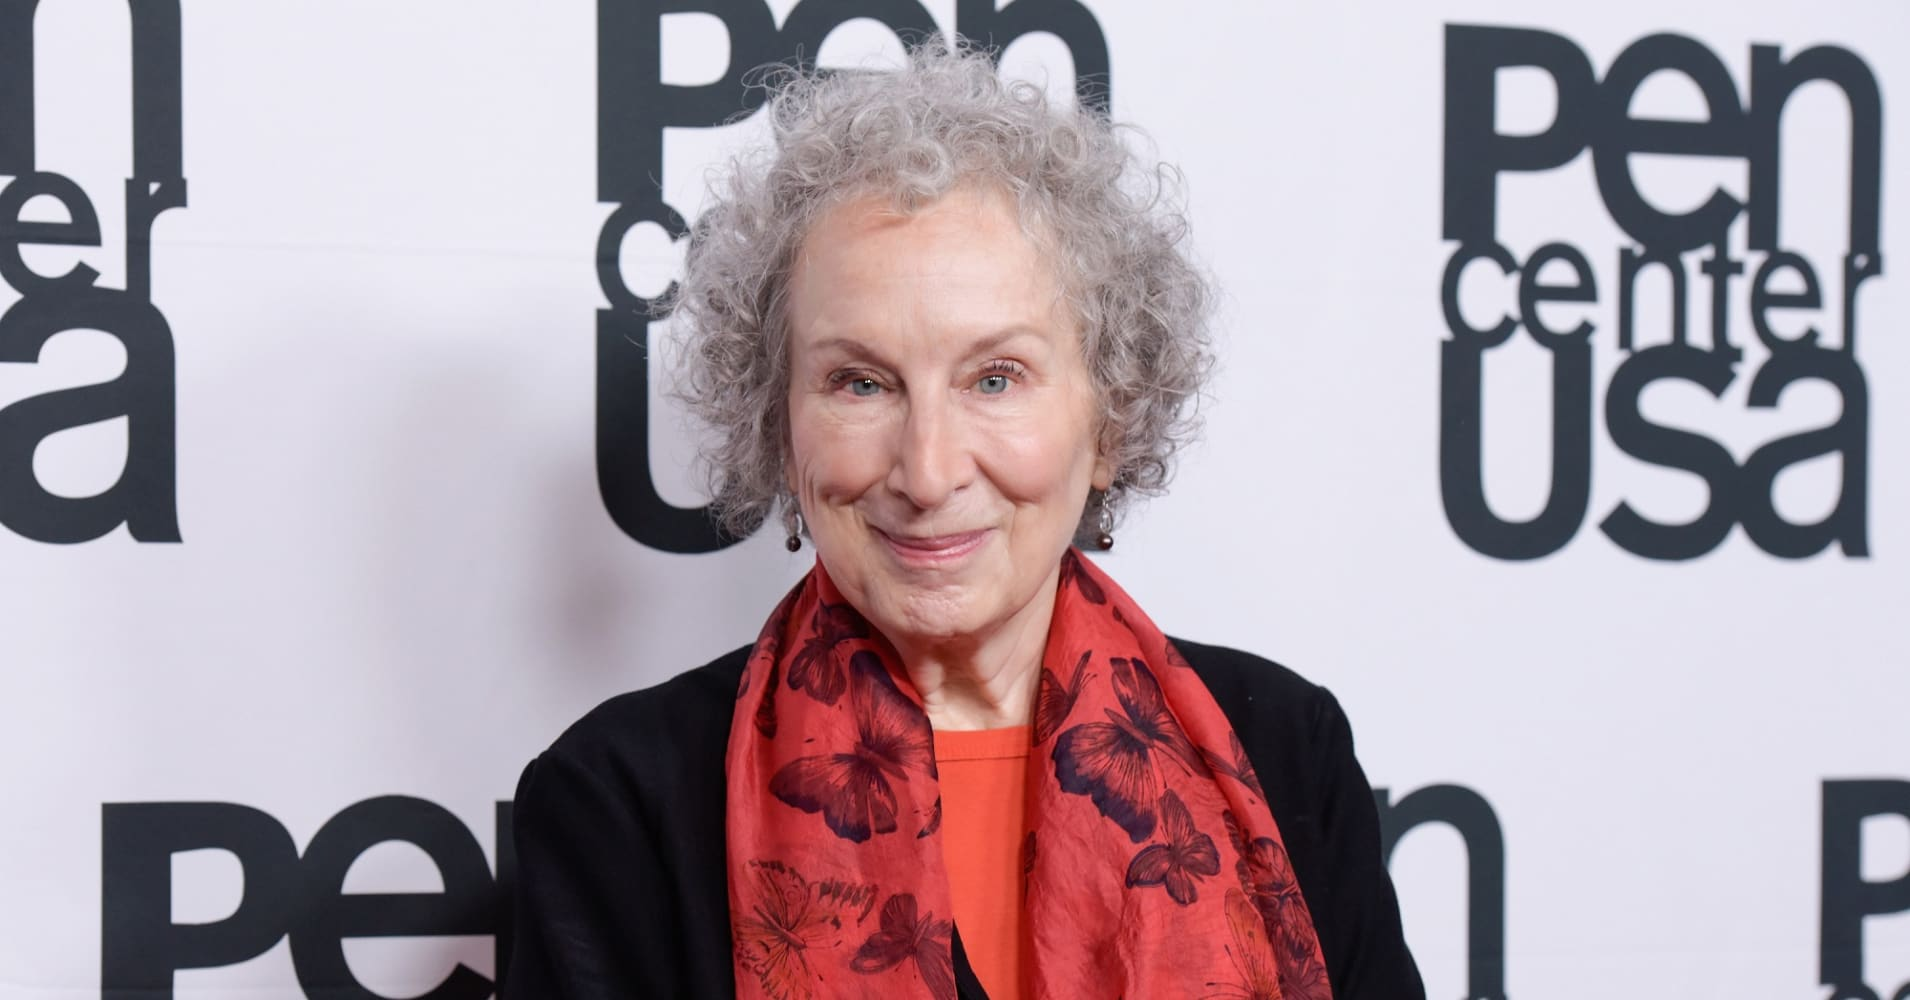 Margaret Atwood attends the PEN Center USA's 27th Annual Literary Awards Festival on October 27, 2017 in Beverly Hills, California.